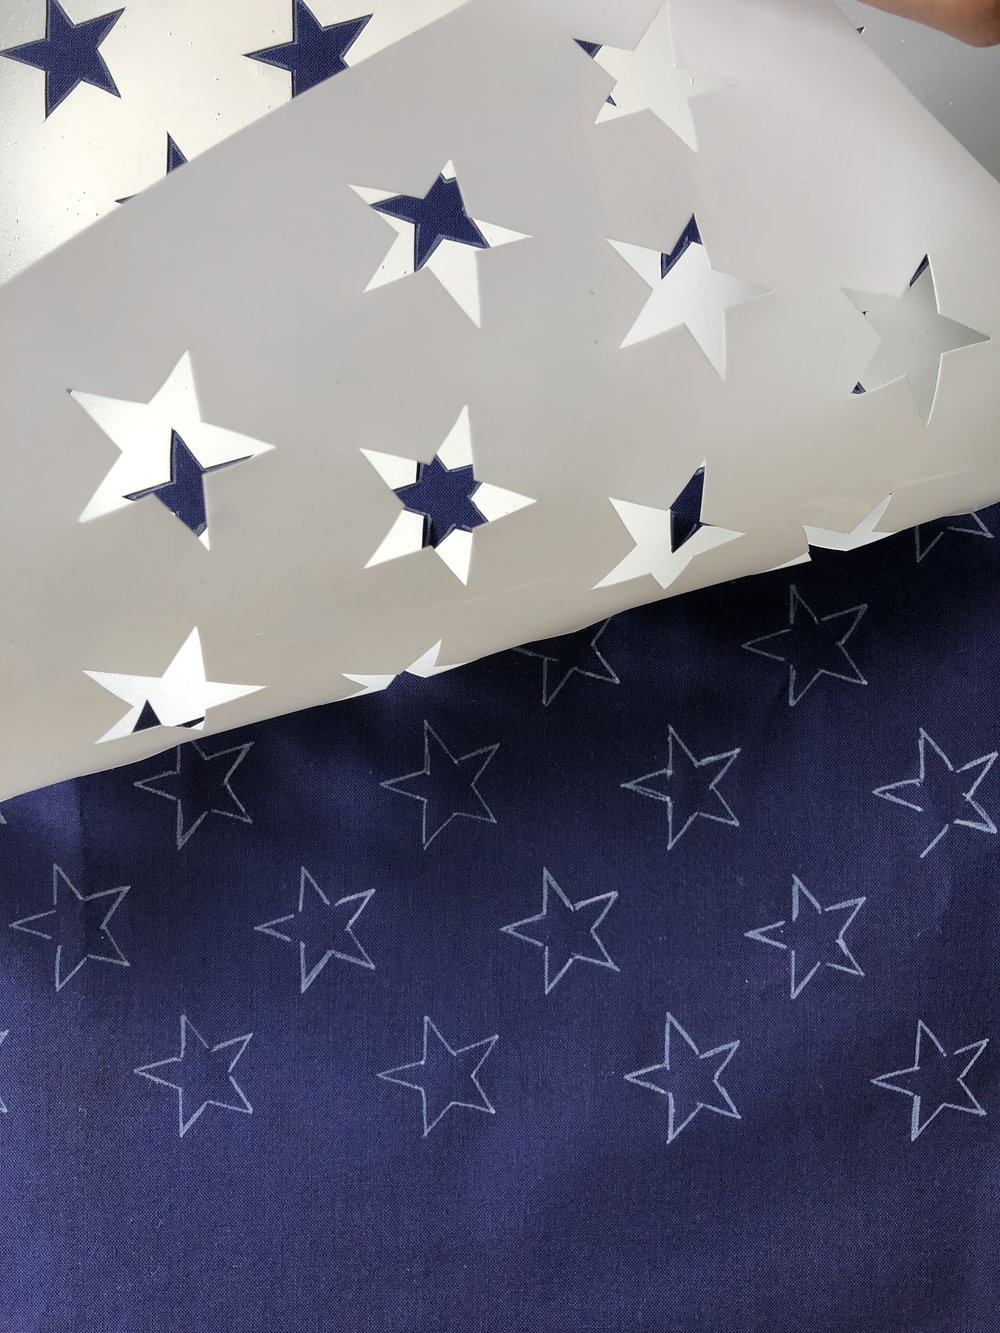 Trace Stars onto Blue Union Fabric